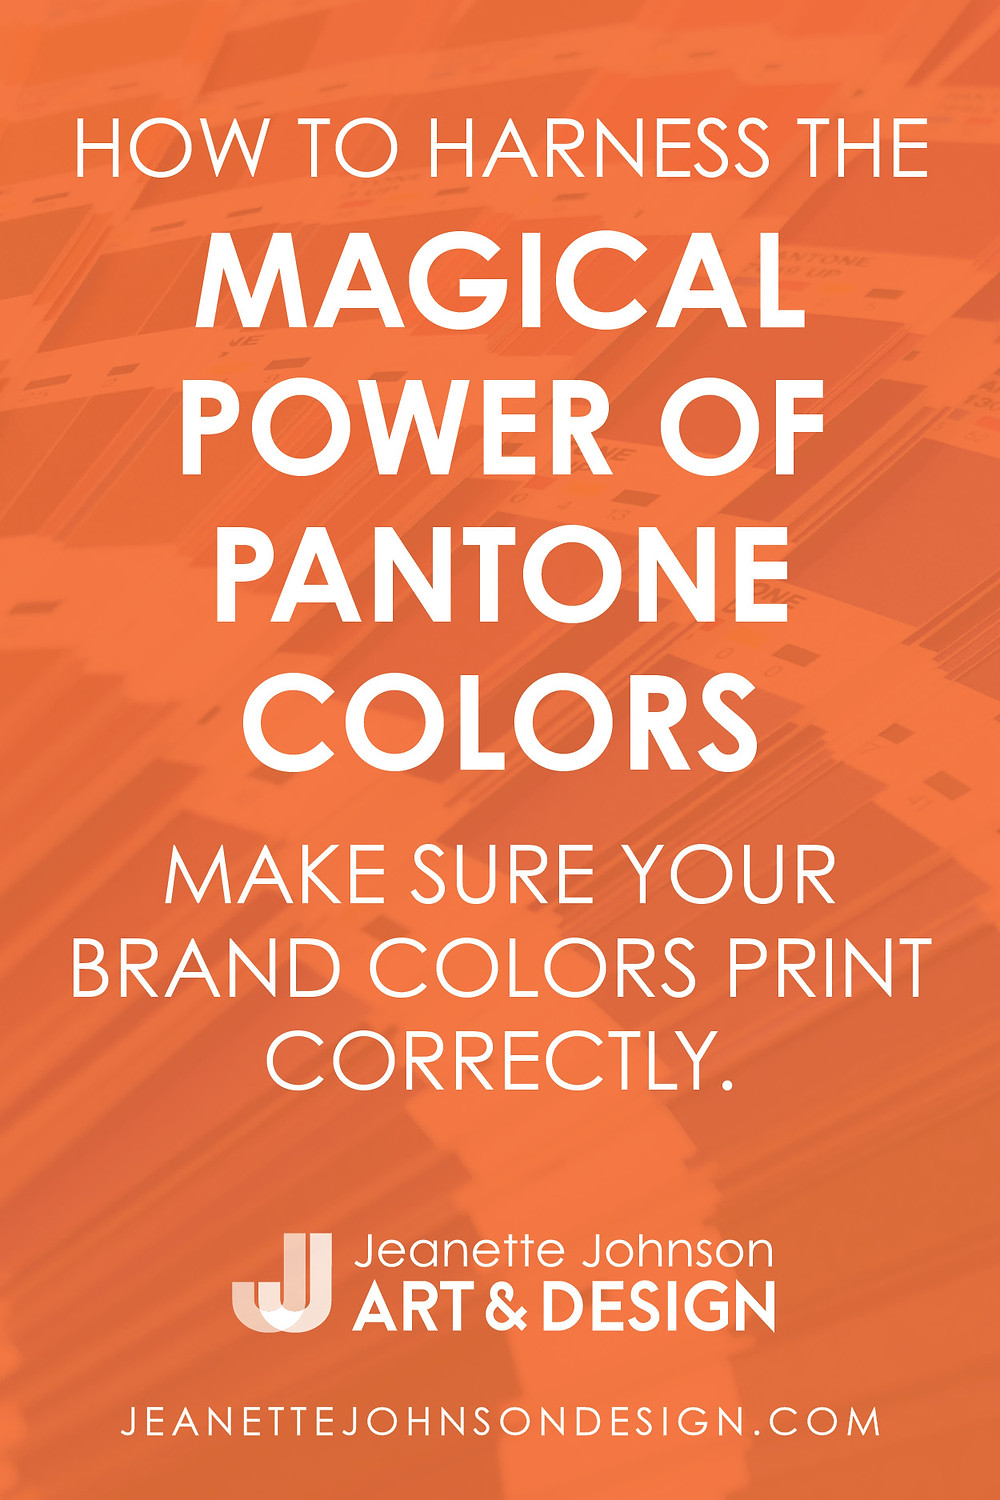 Pin image for How to Harness the Magical Power of Pantone Colors article.